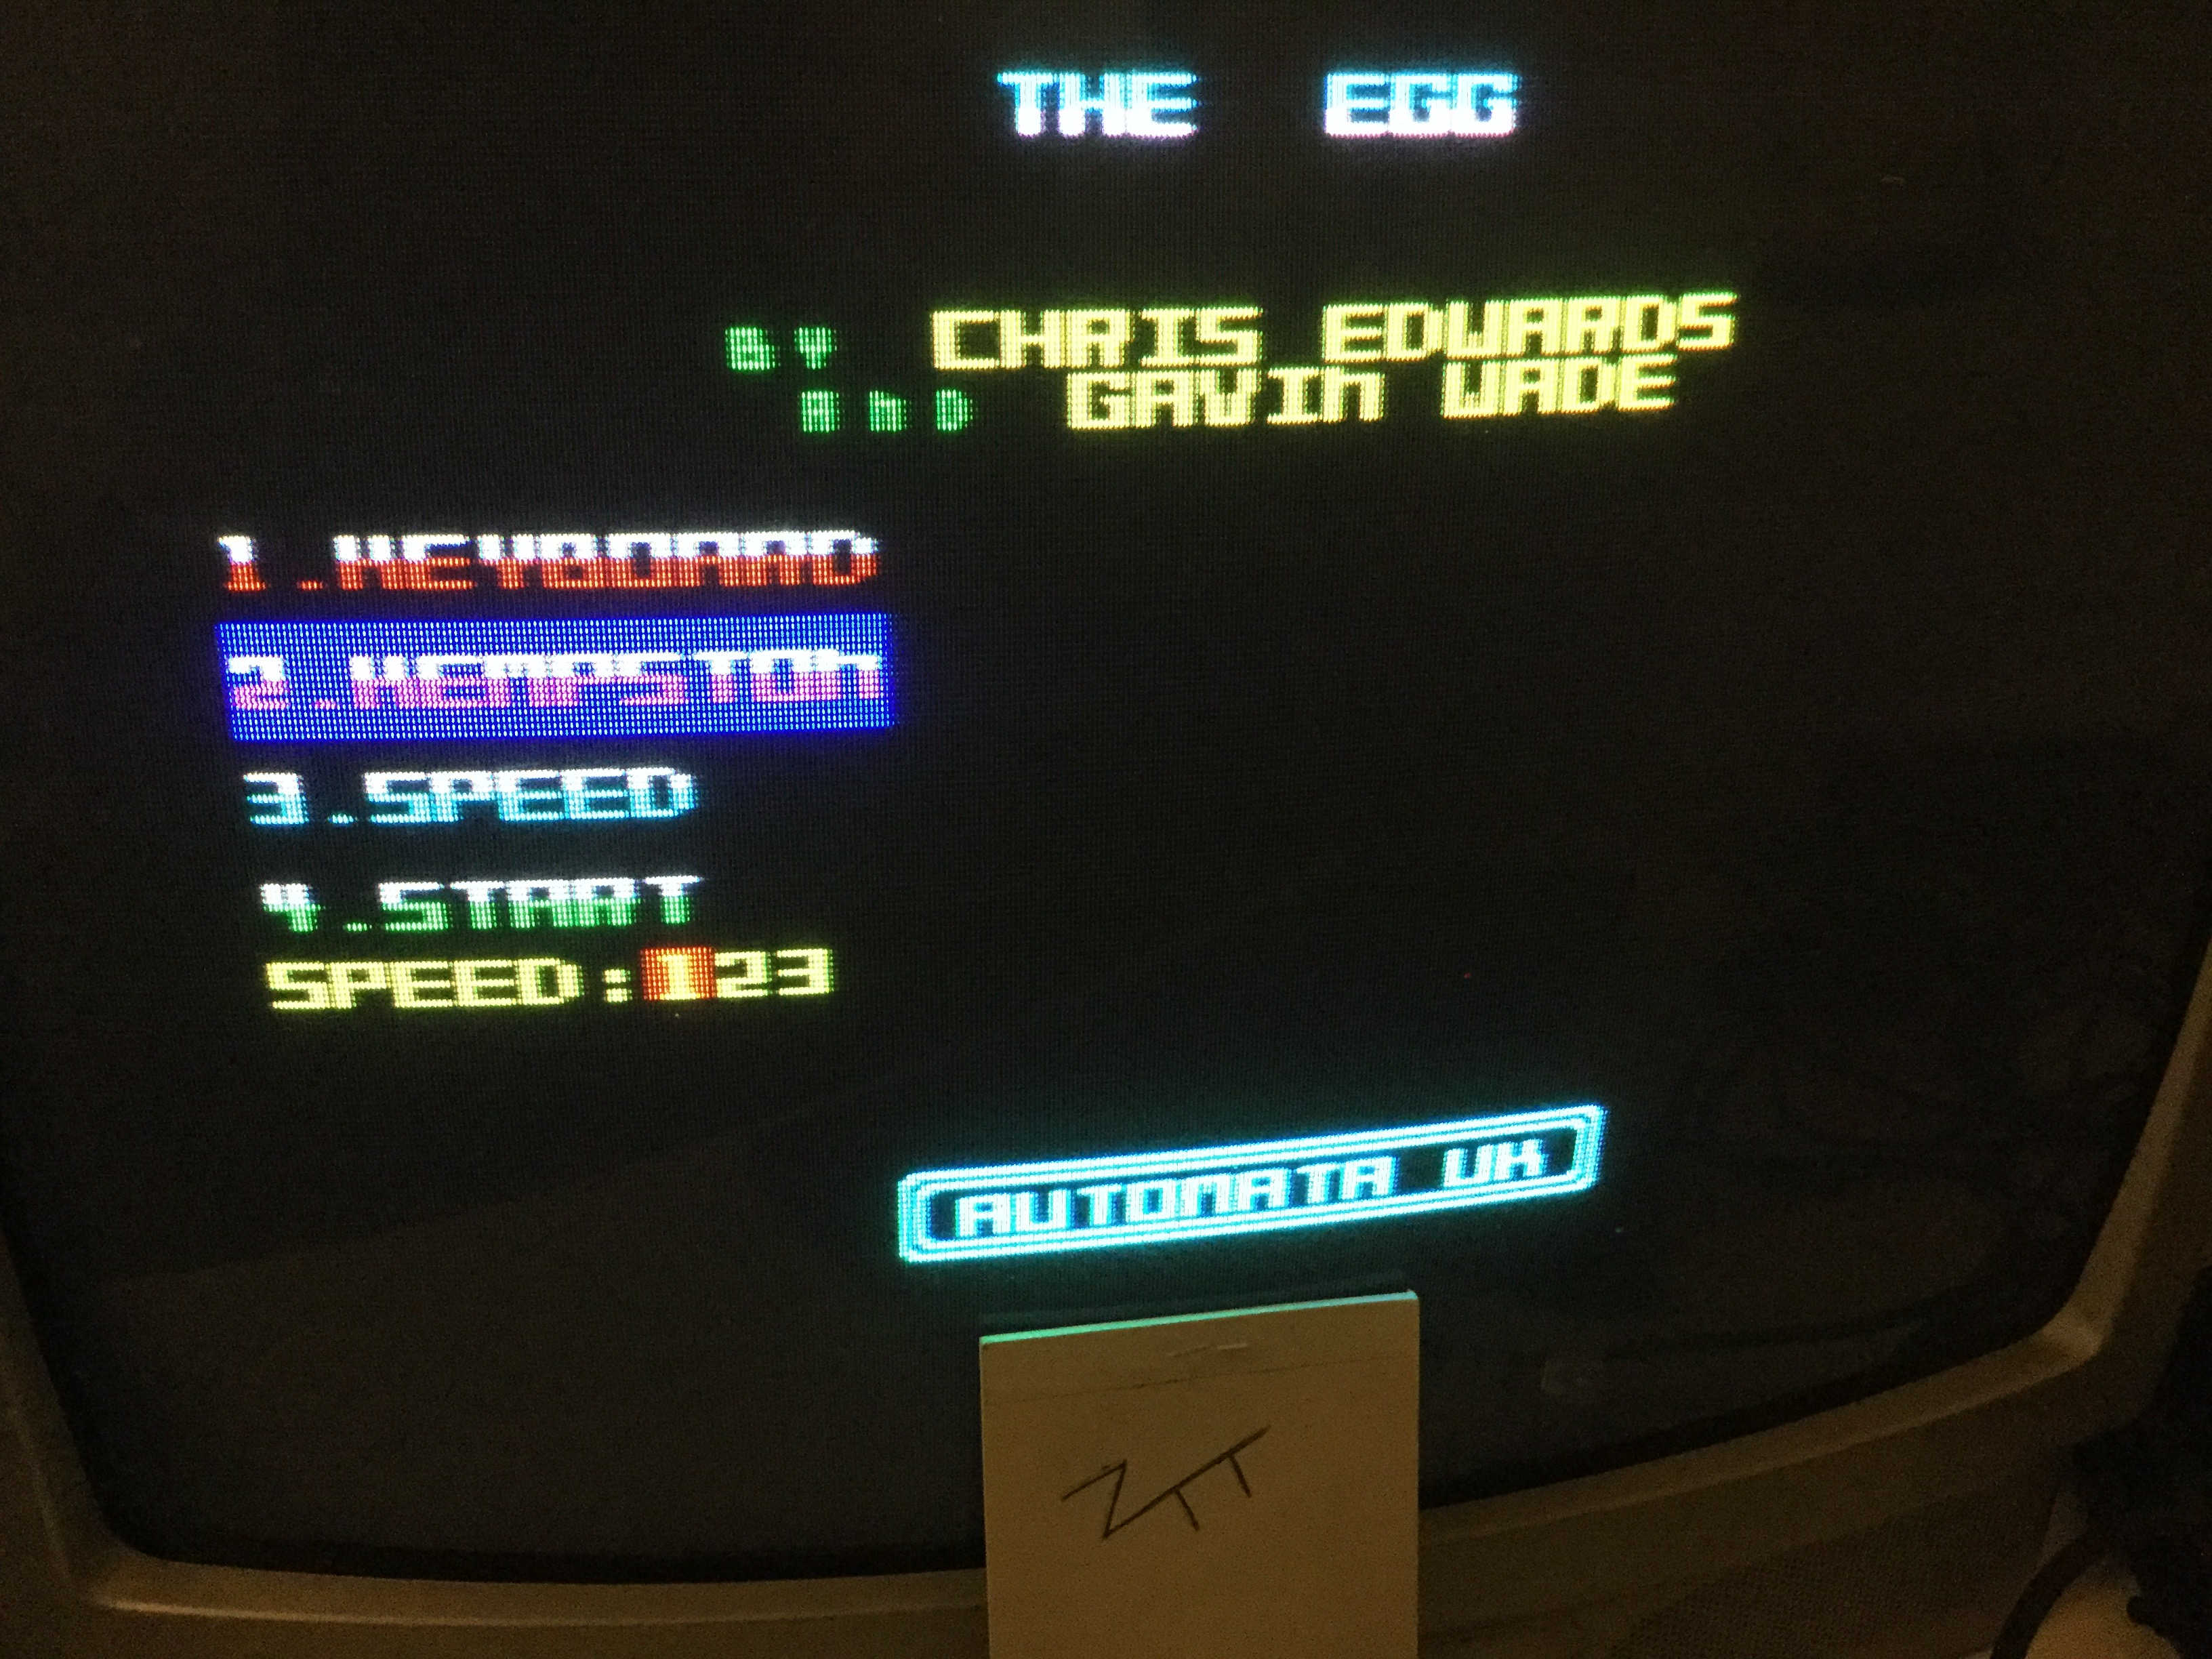 Frankie: The Egg [Automata] [Speed 1] (ZX Spectrum) 238 points on 2019-09-13 16:40:39